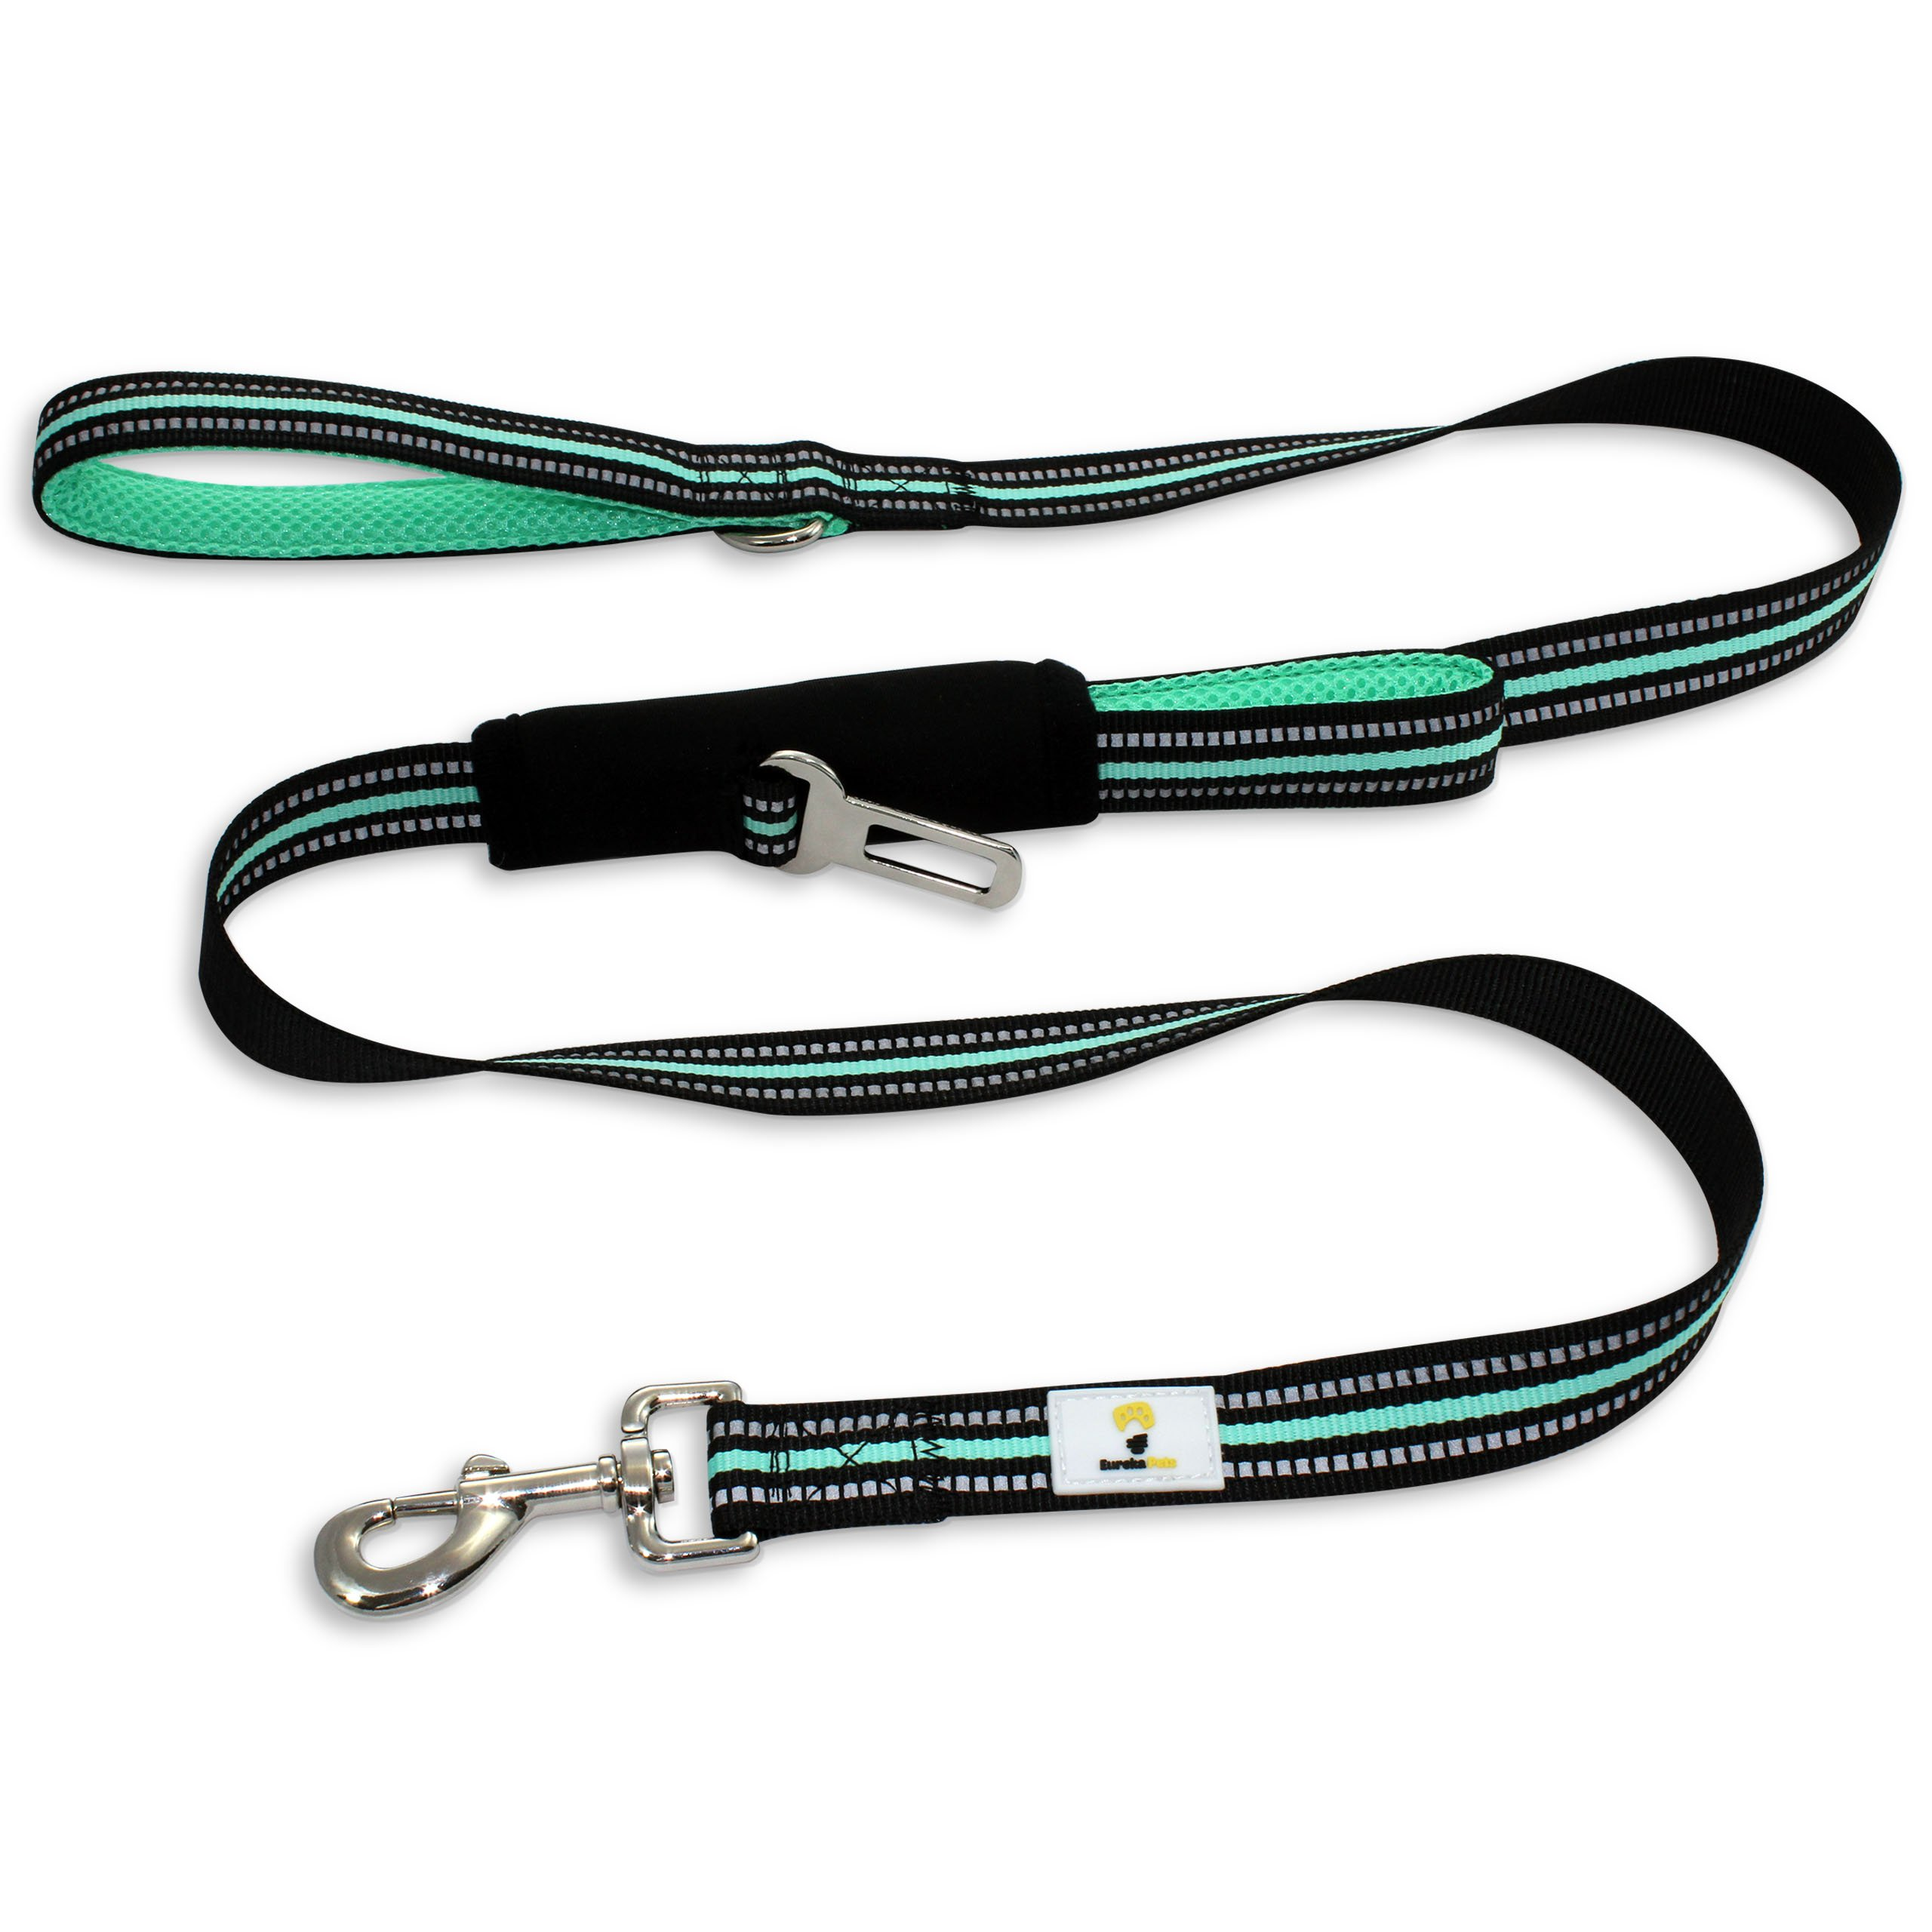 Eureka Pets Dog Leash – Car Seatbelt Buckle For Safety – 5ft Long – Dual Handles For Control - Reflective Stitches For Night Walk – Heavy Duty Clasp – Small Medium and Large Dogs – Best Leash